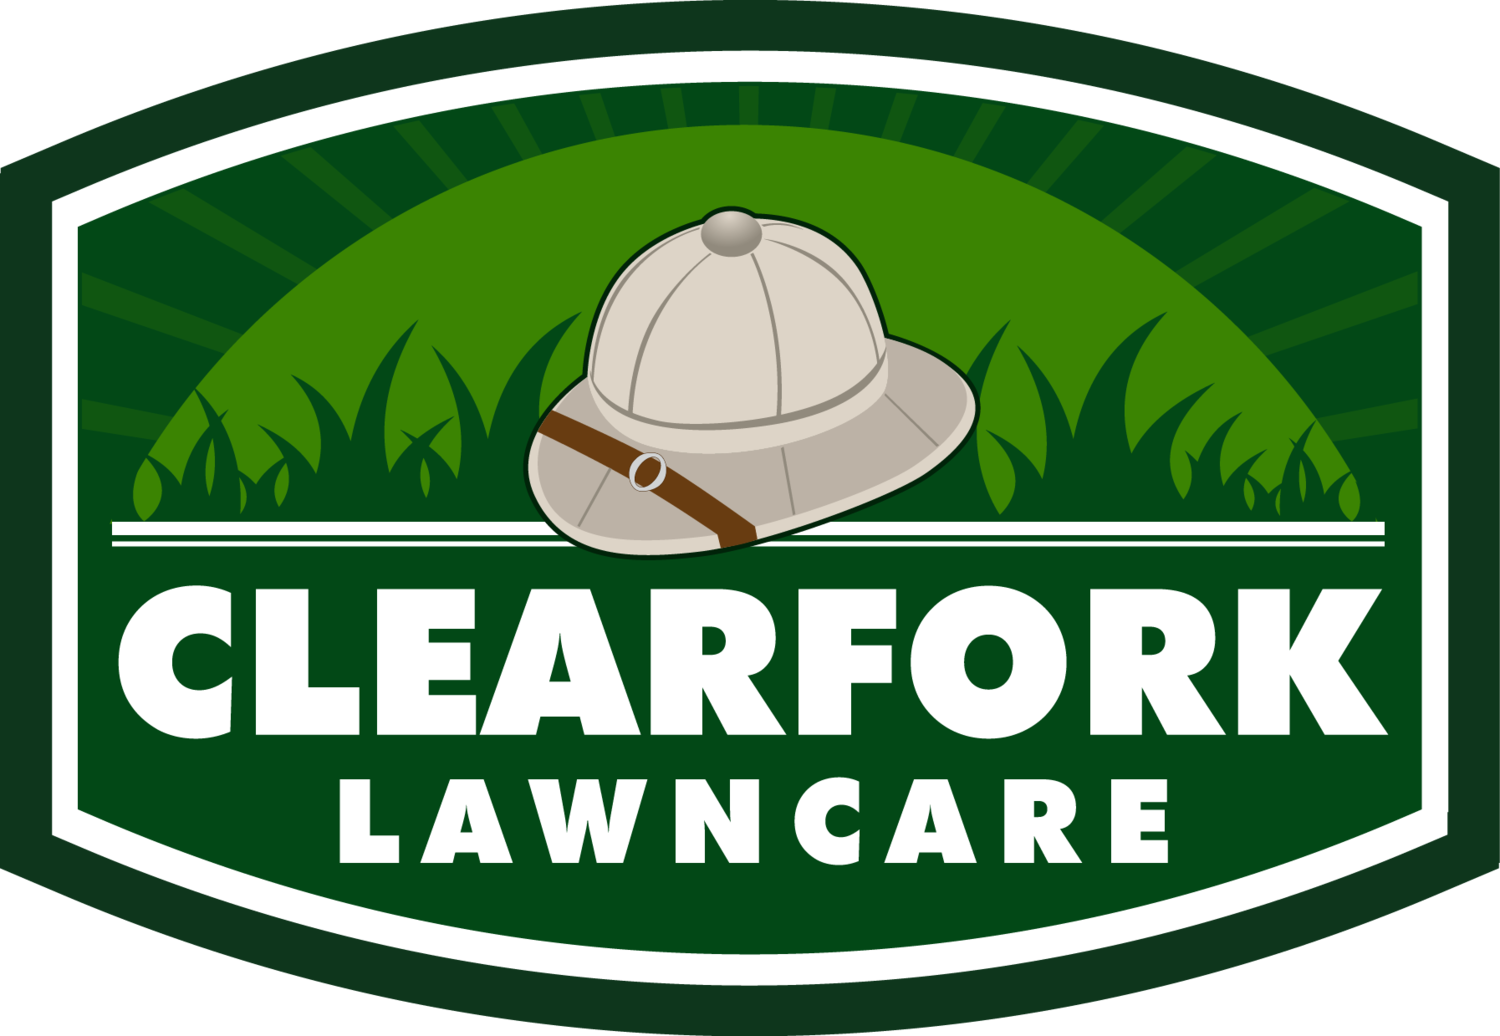 Clearfork Lawn Care